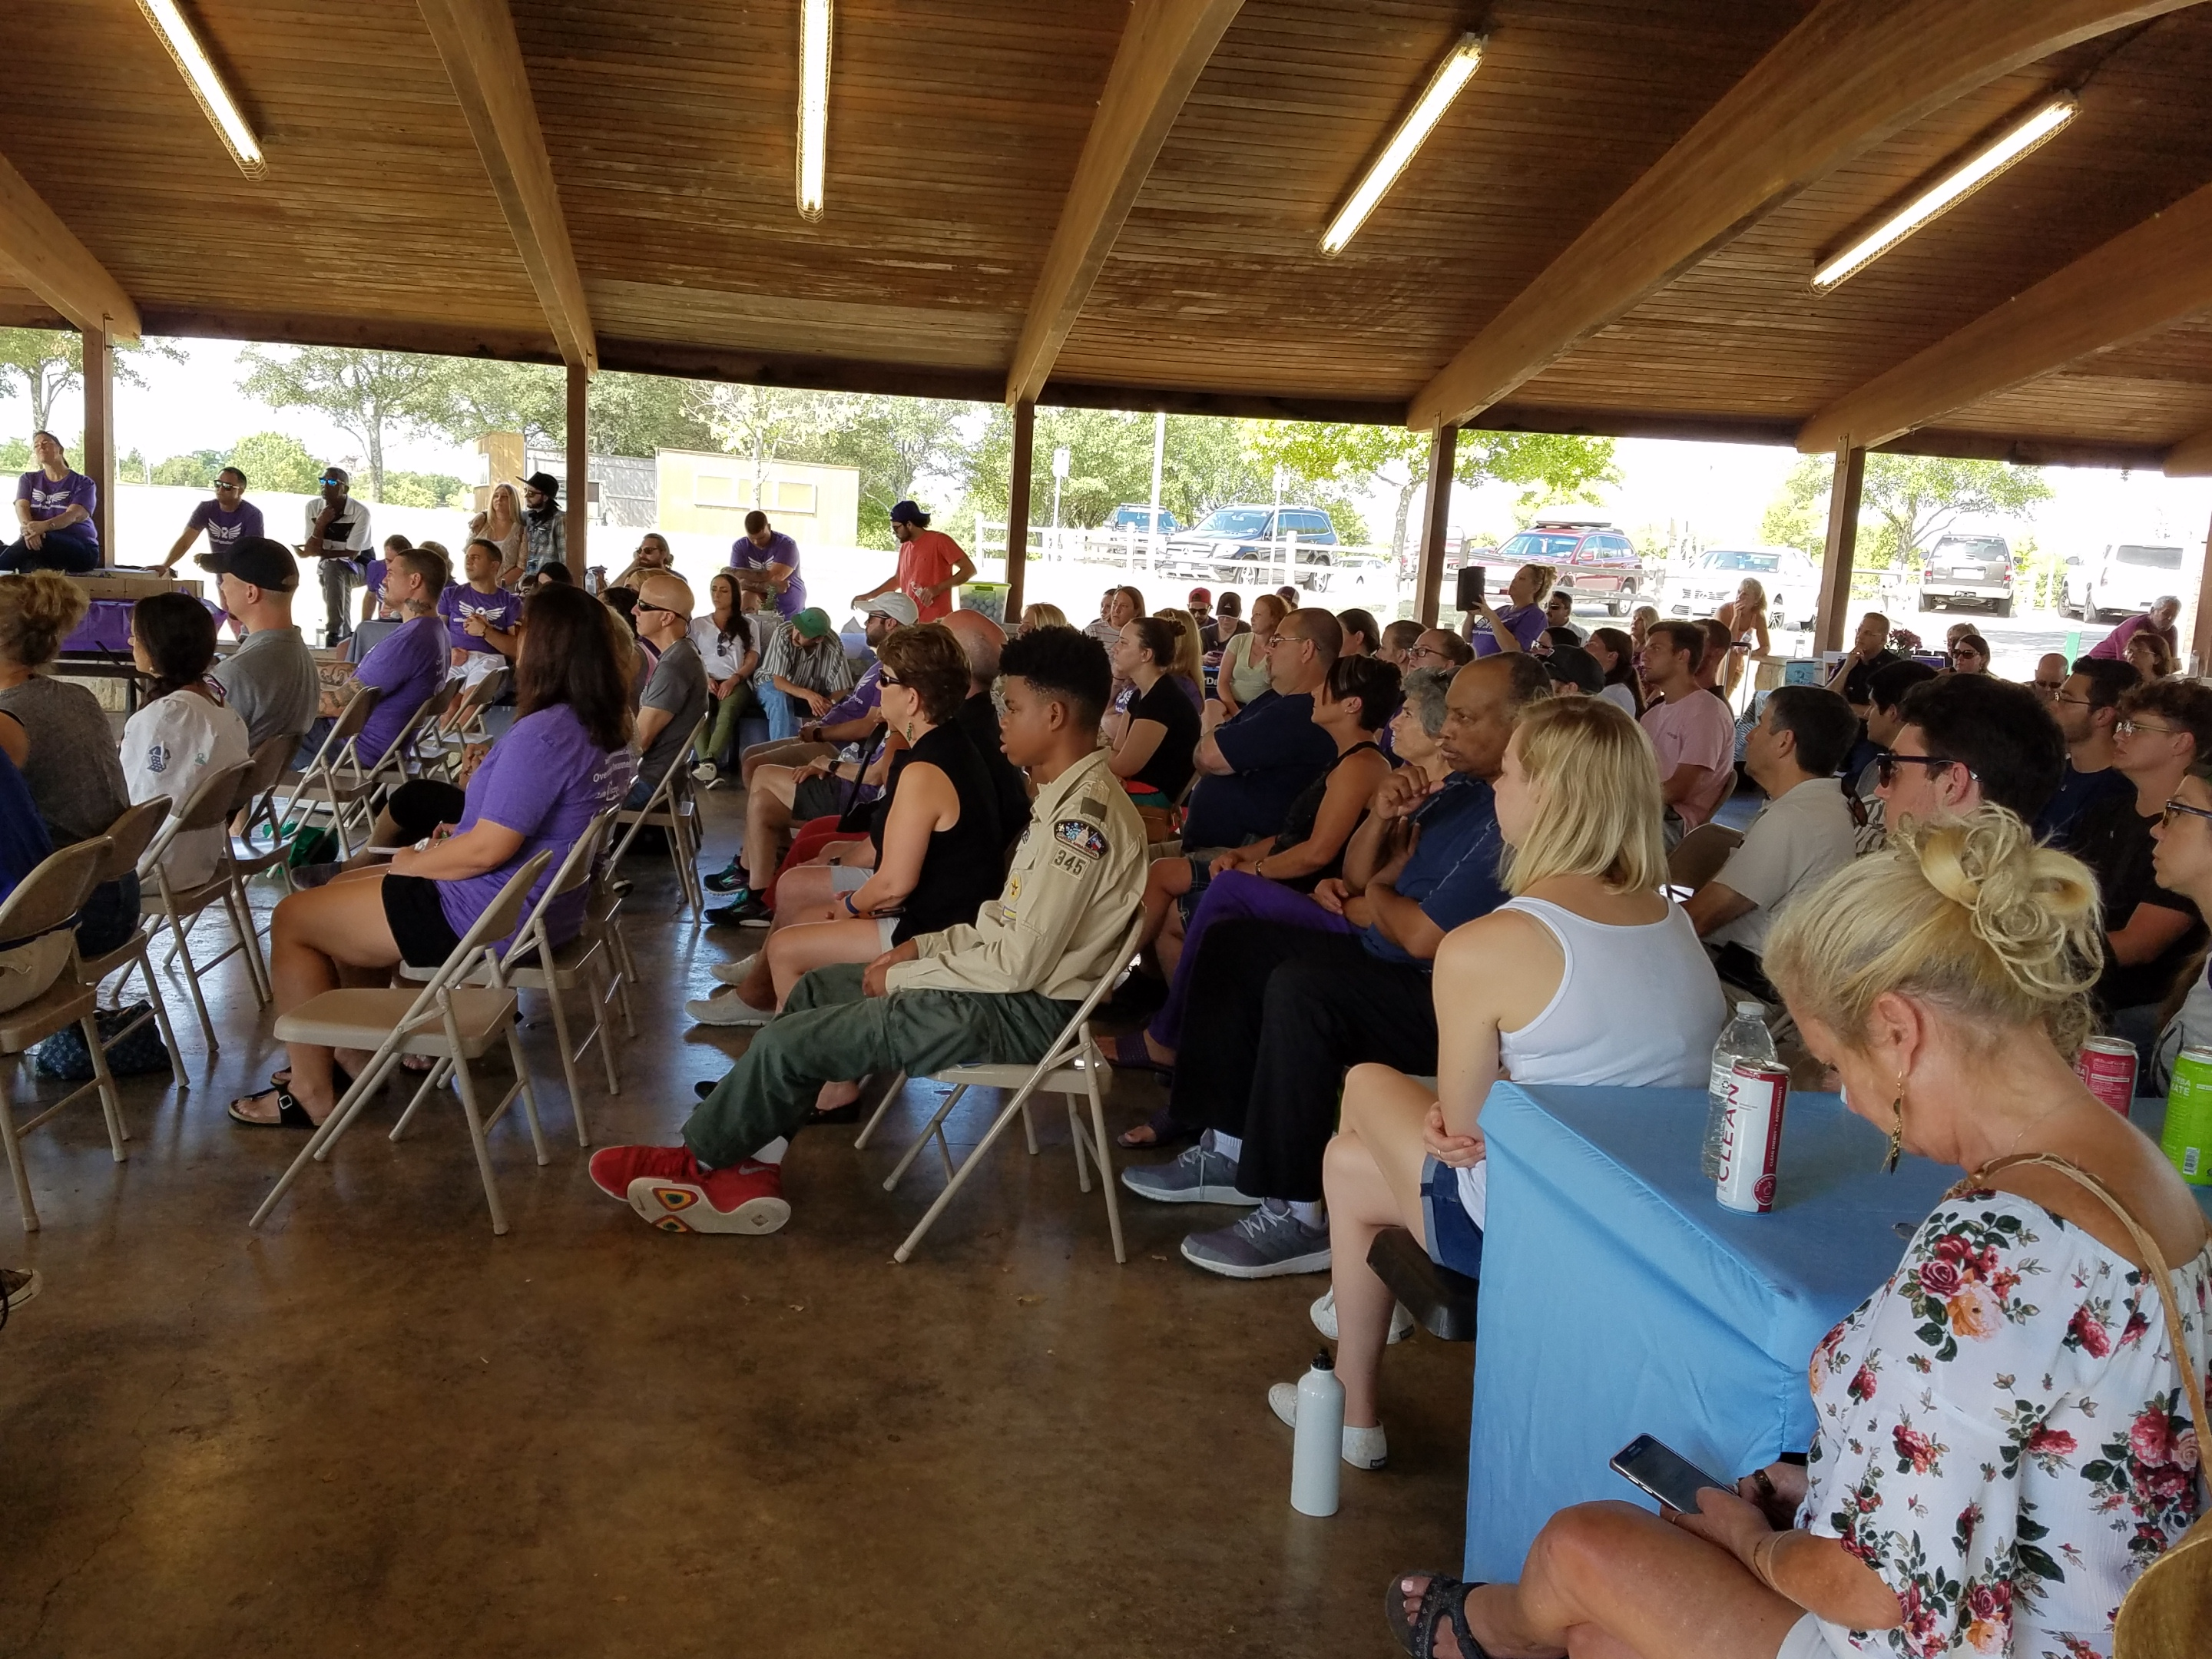 A large group of people are seated beneath the Lakeview Pavilion at Old Settlers Park listening to various speakers.